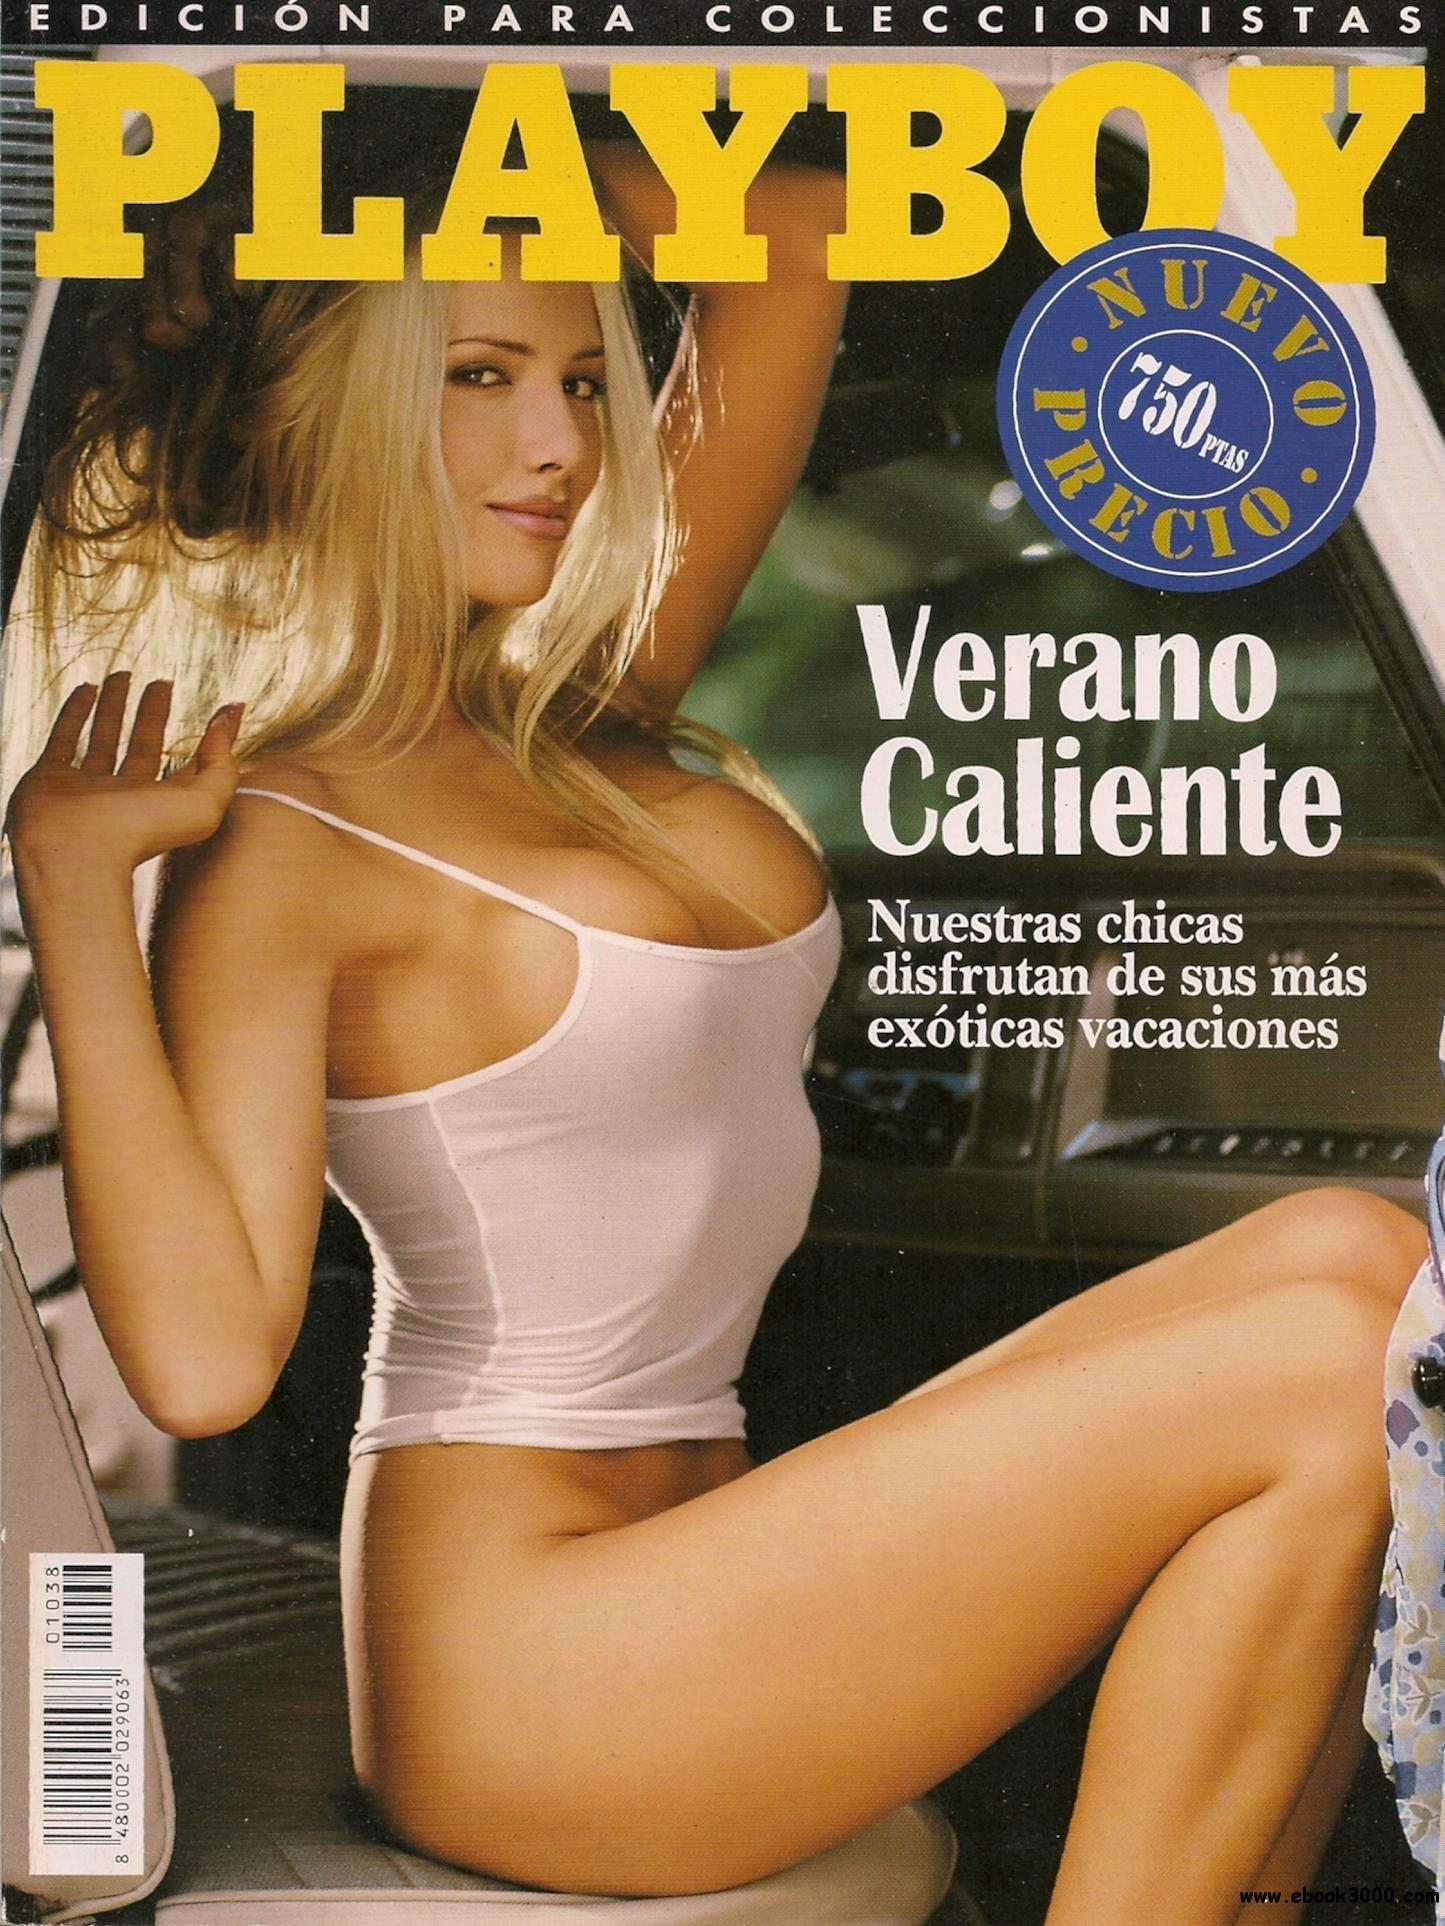 Playboy Spain - Especial Edicion 38 - Ve